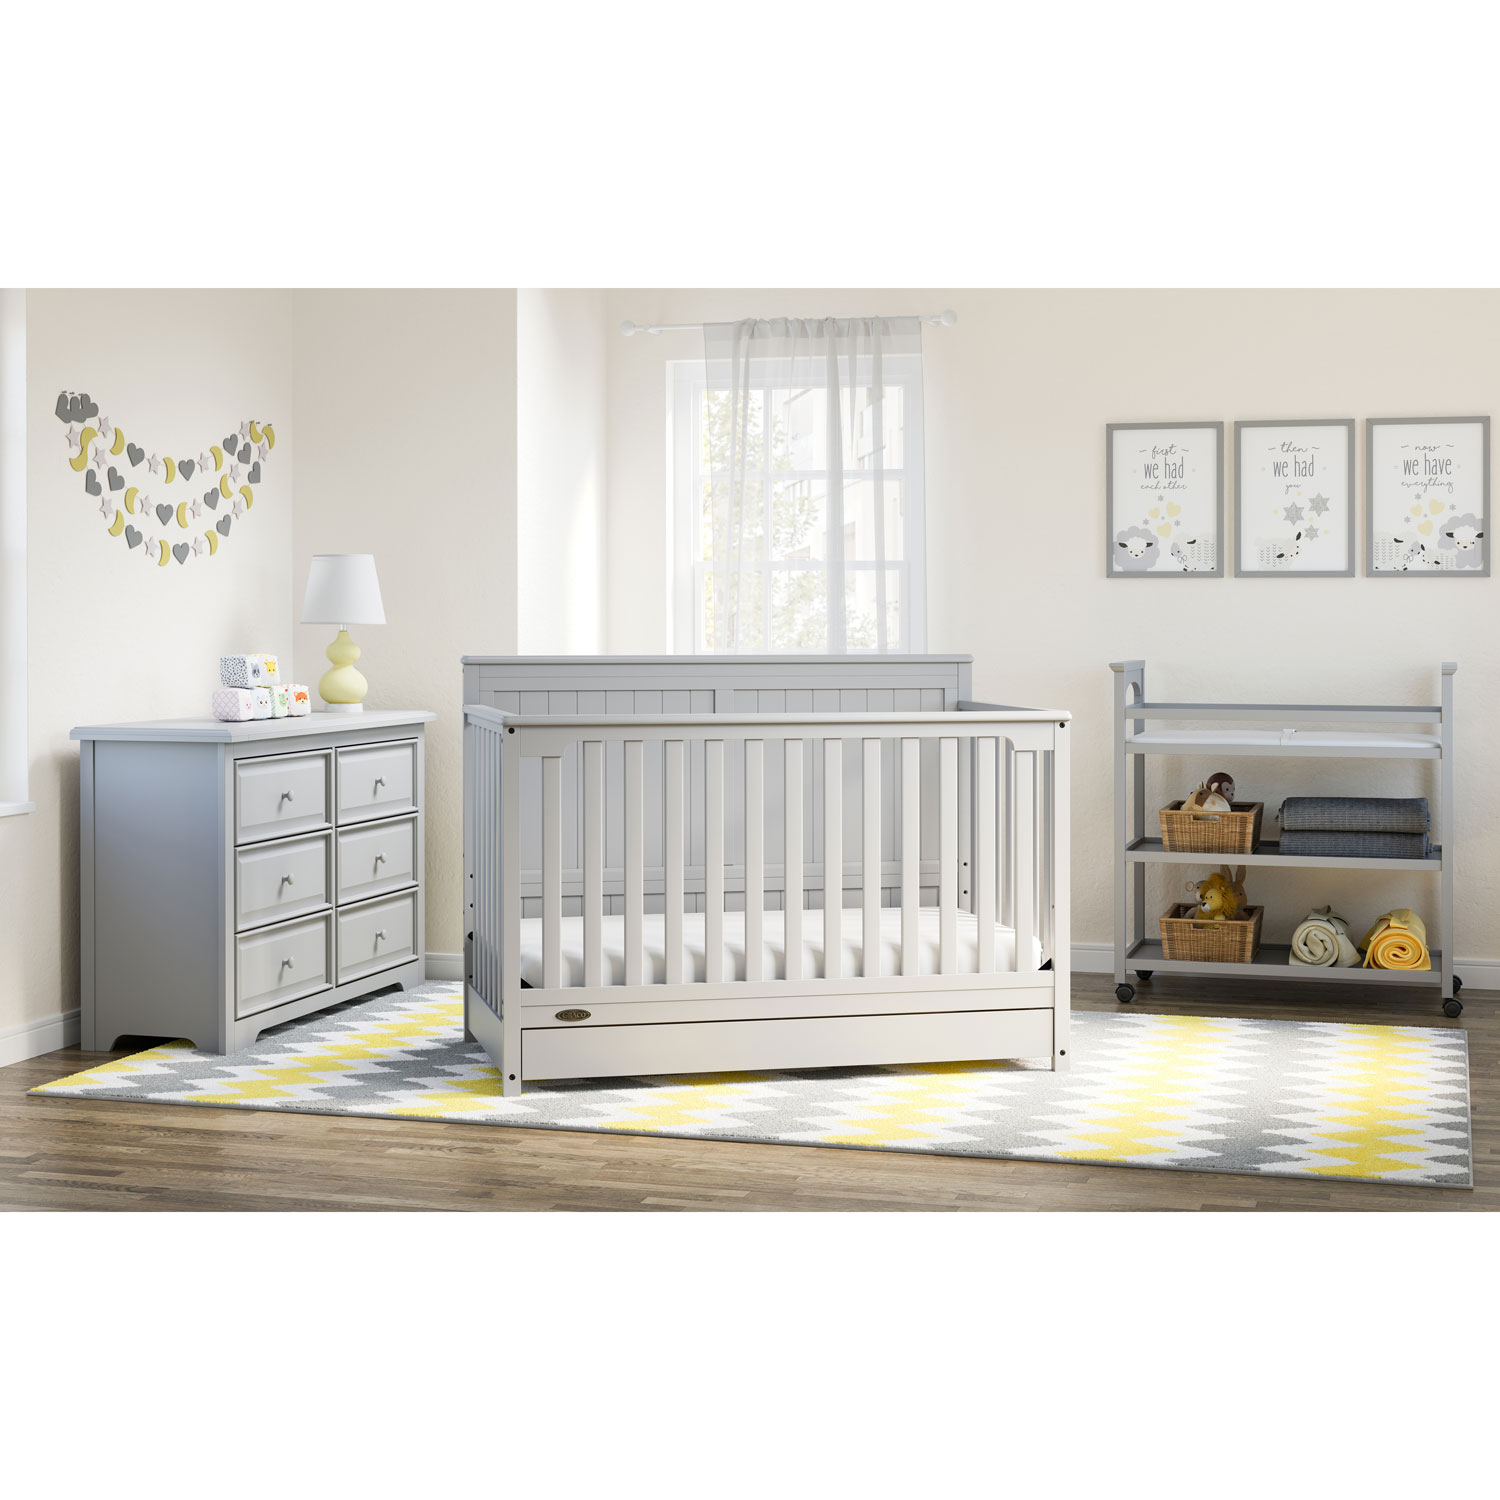 Graco Hadley 4 In 1 Convertible Crib Grey Best Buy Canada